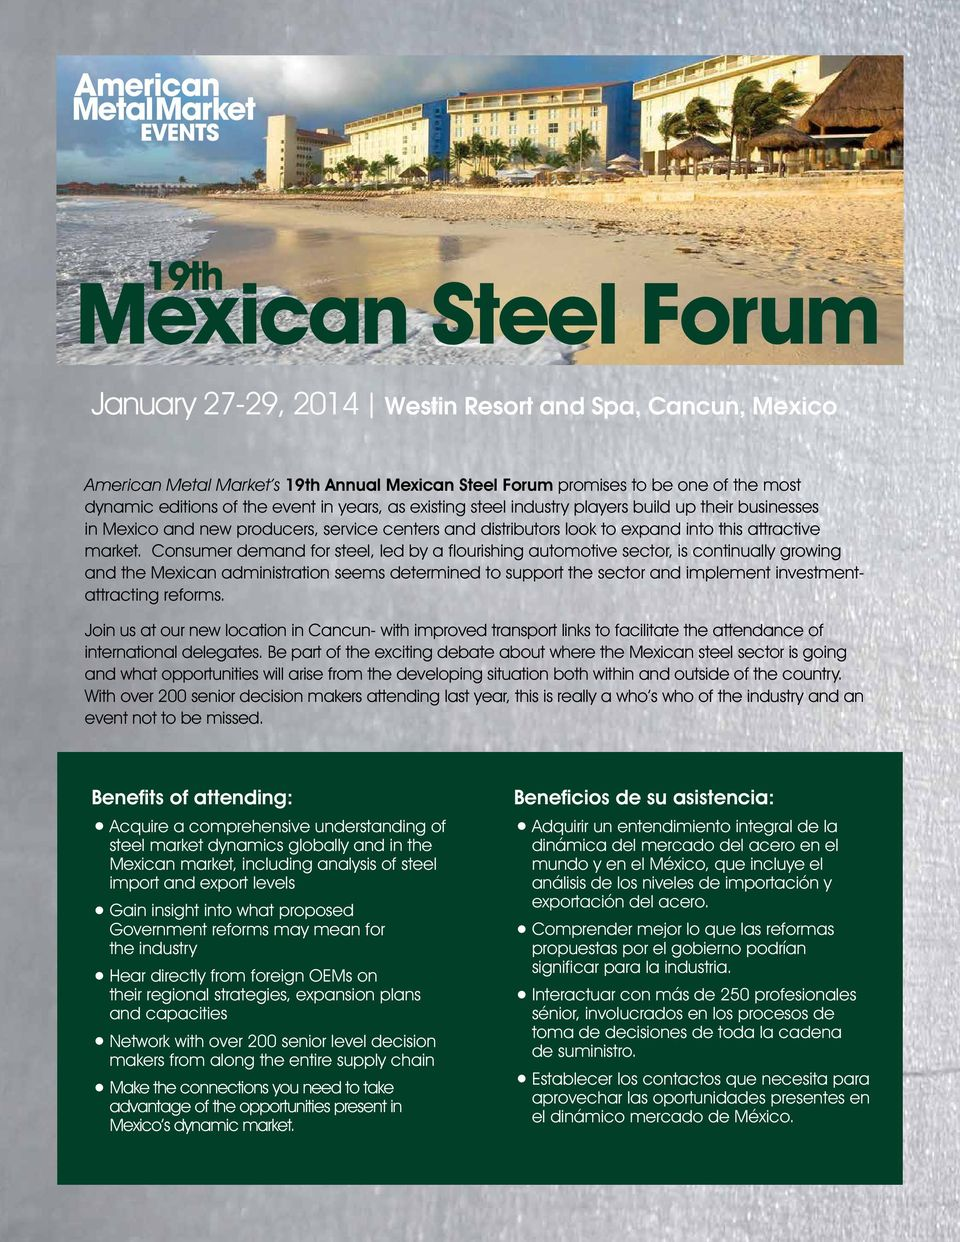 Consumer demand for steel, led by a flourishing automotive sector, is continually growing and the Mexican administration seems determined to support the sector and implement investmentattracting